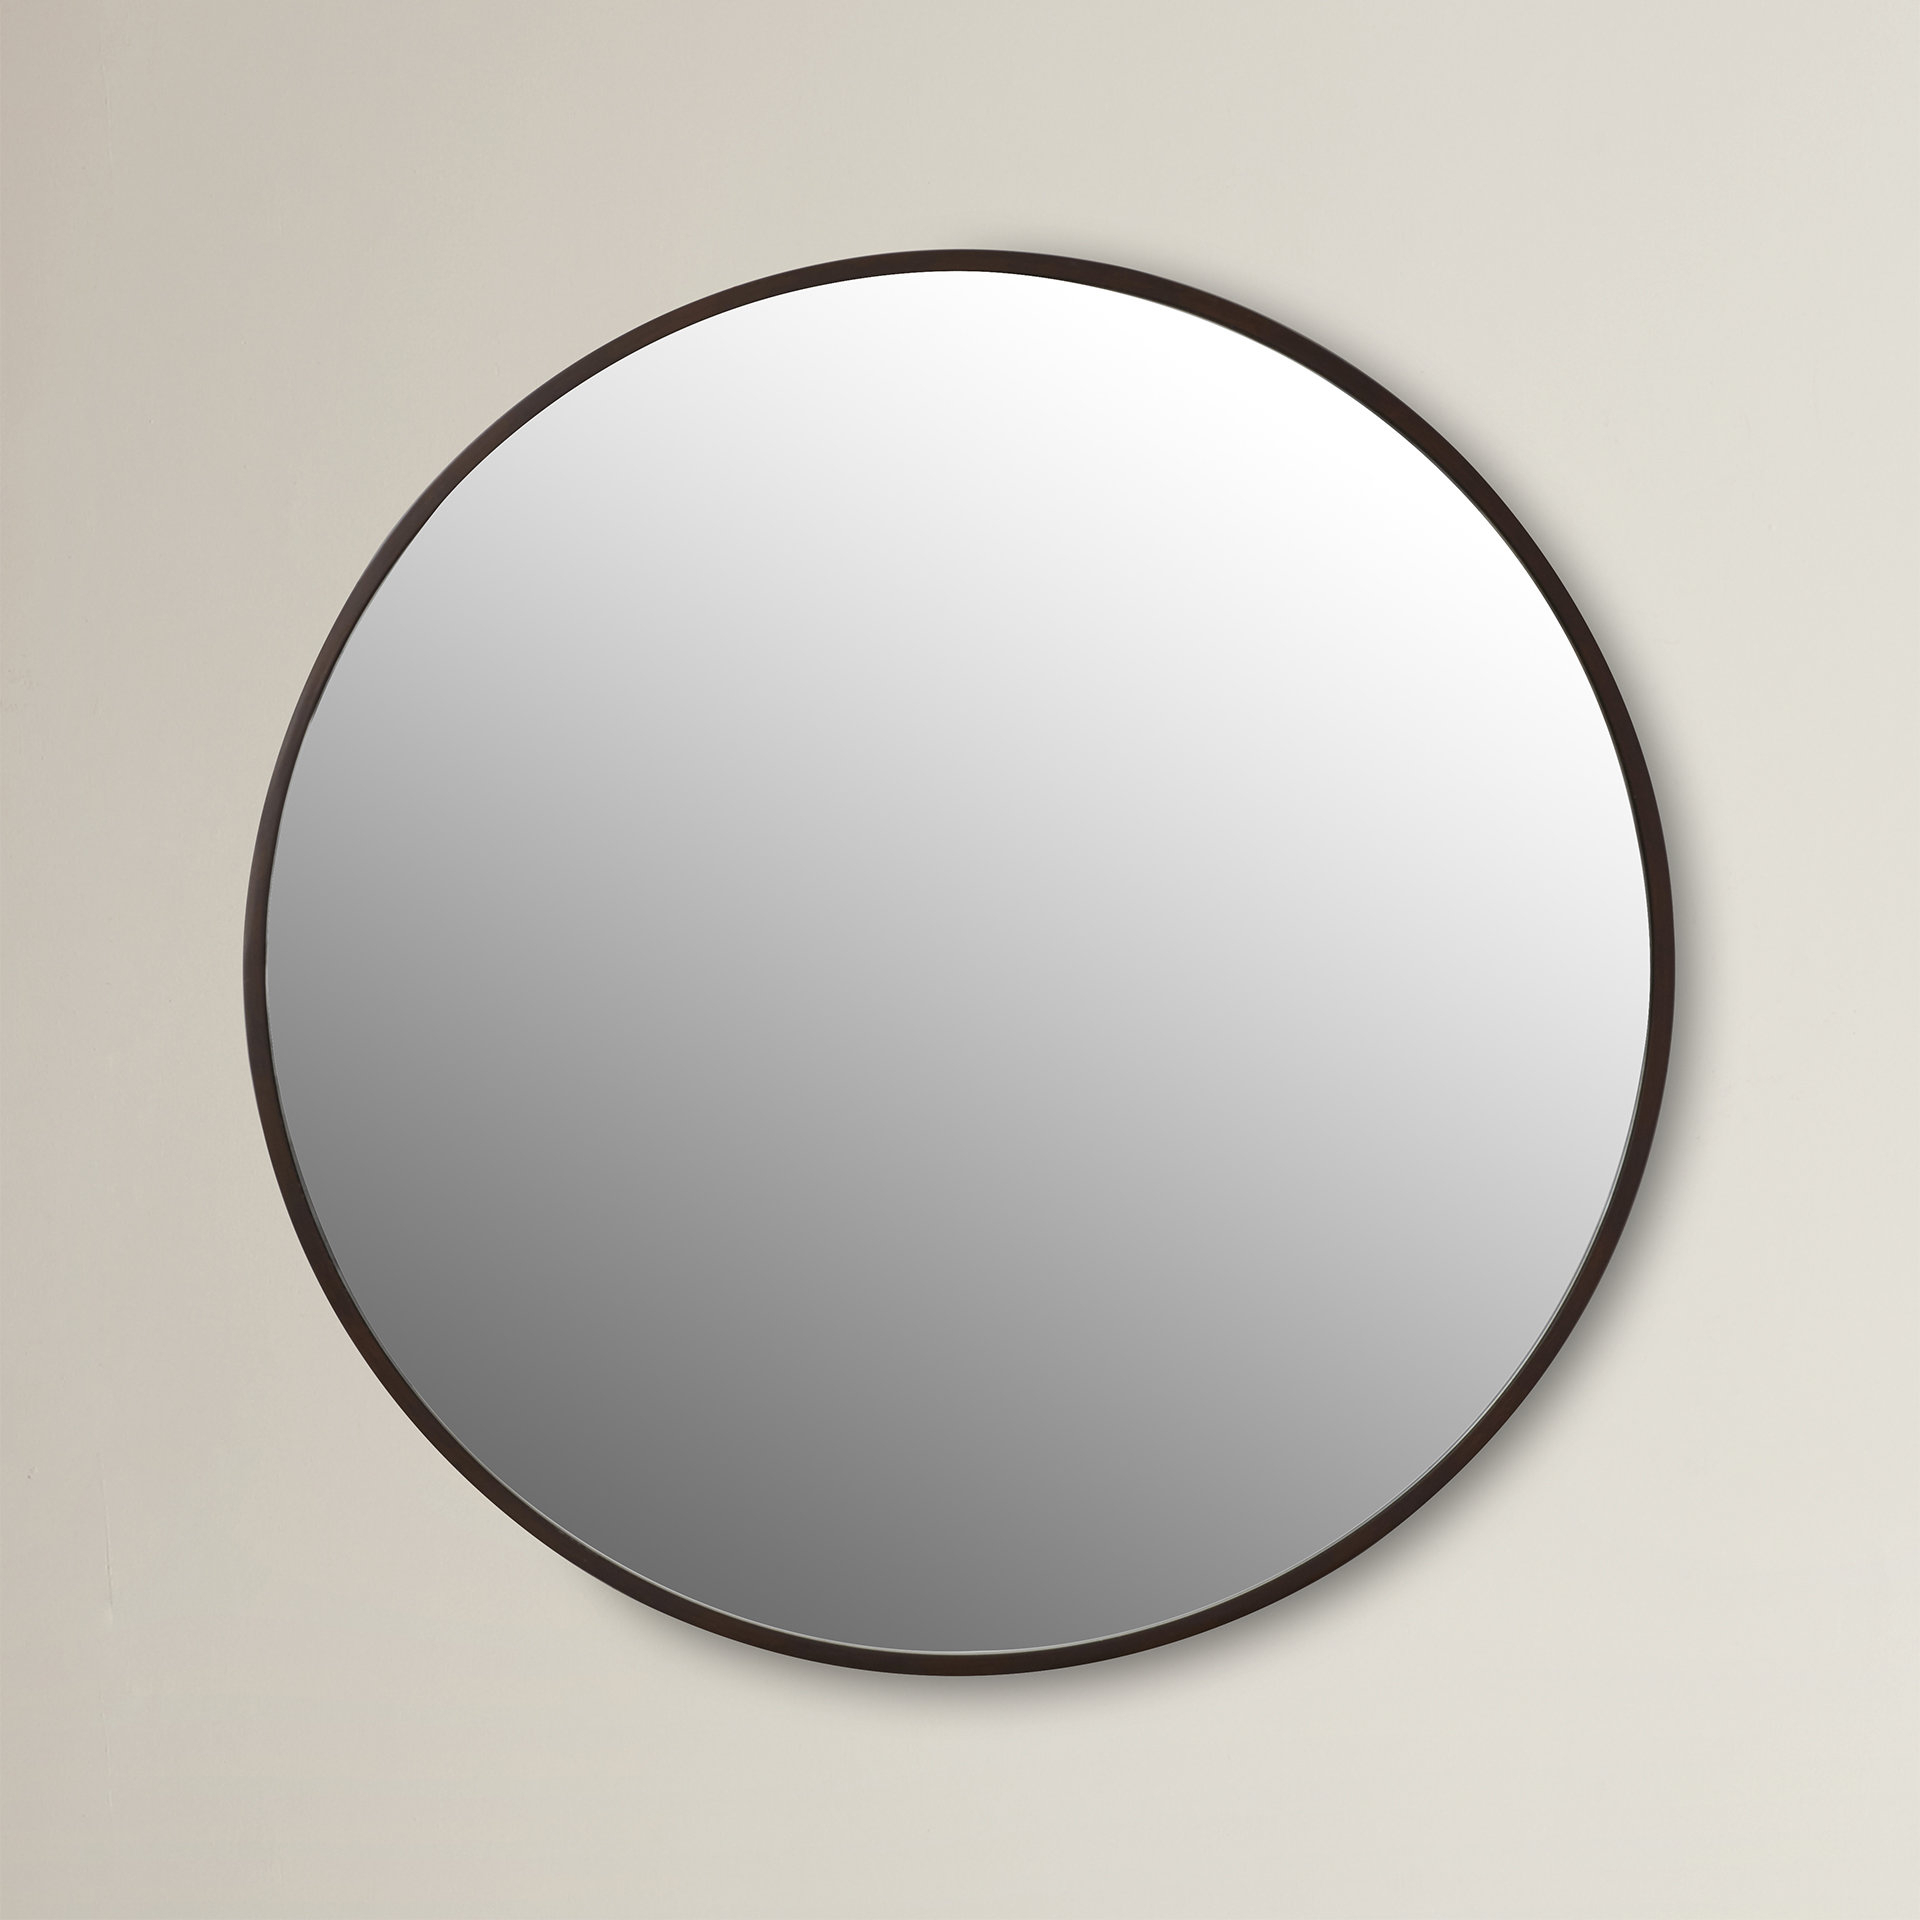 Levan Modern & Contemporary Accent Mirror Intended For Levan Modern & Contemporary Accent Mirrors (View 2 of 20)